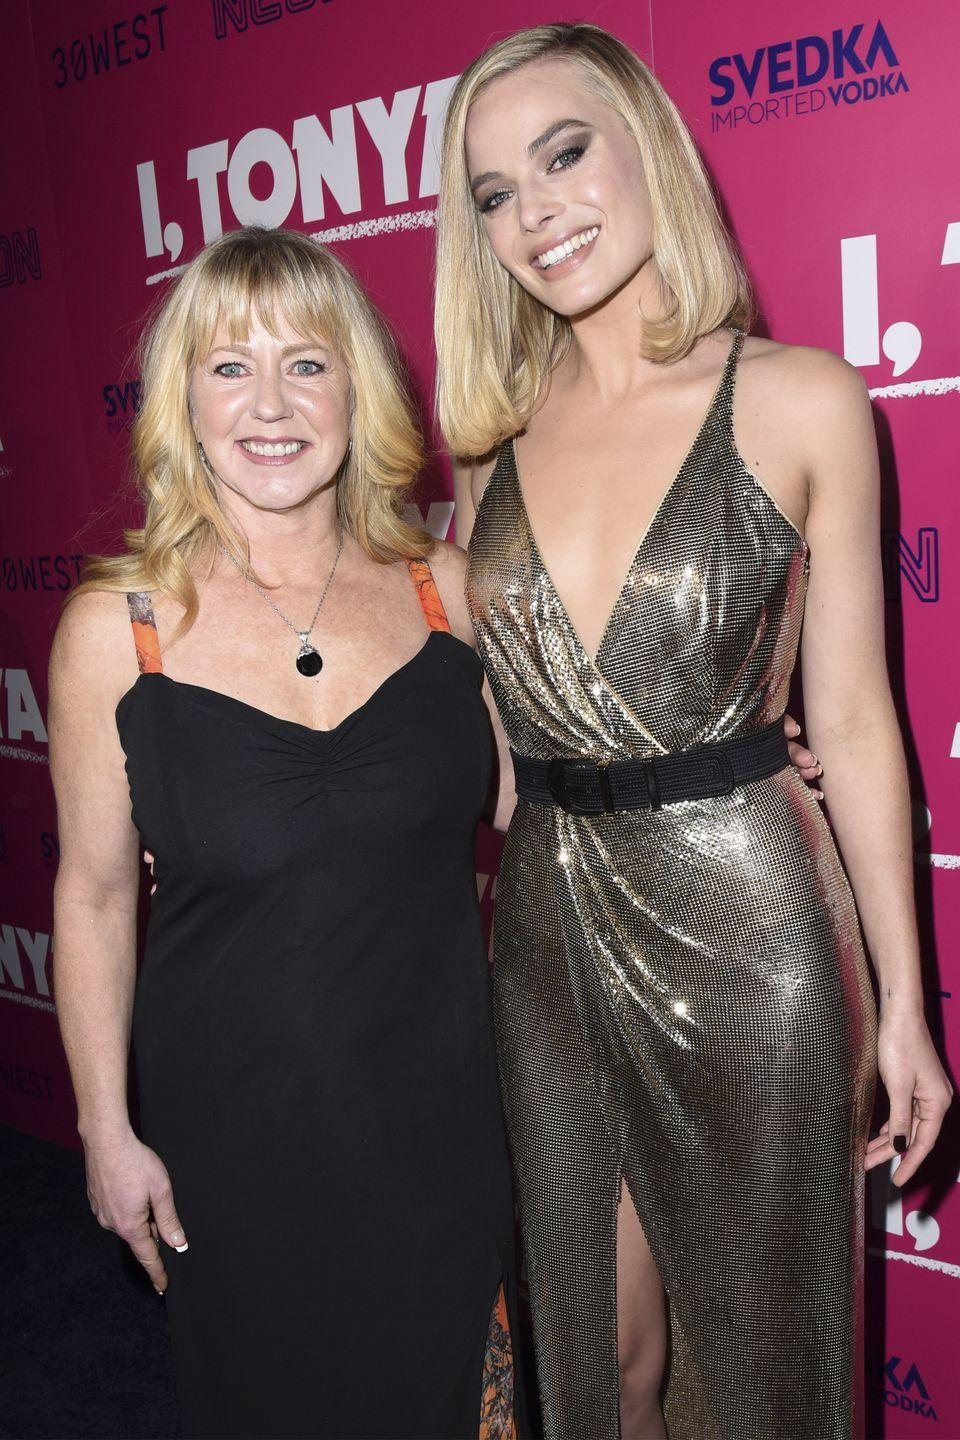 <p>Margot Robbie portrayed figure skater Tonya Harding in the movie <em>I, Tonya </em>in 2018. Robbie was also nominated for her first-ever Oscar that year for her role.</p>